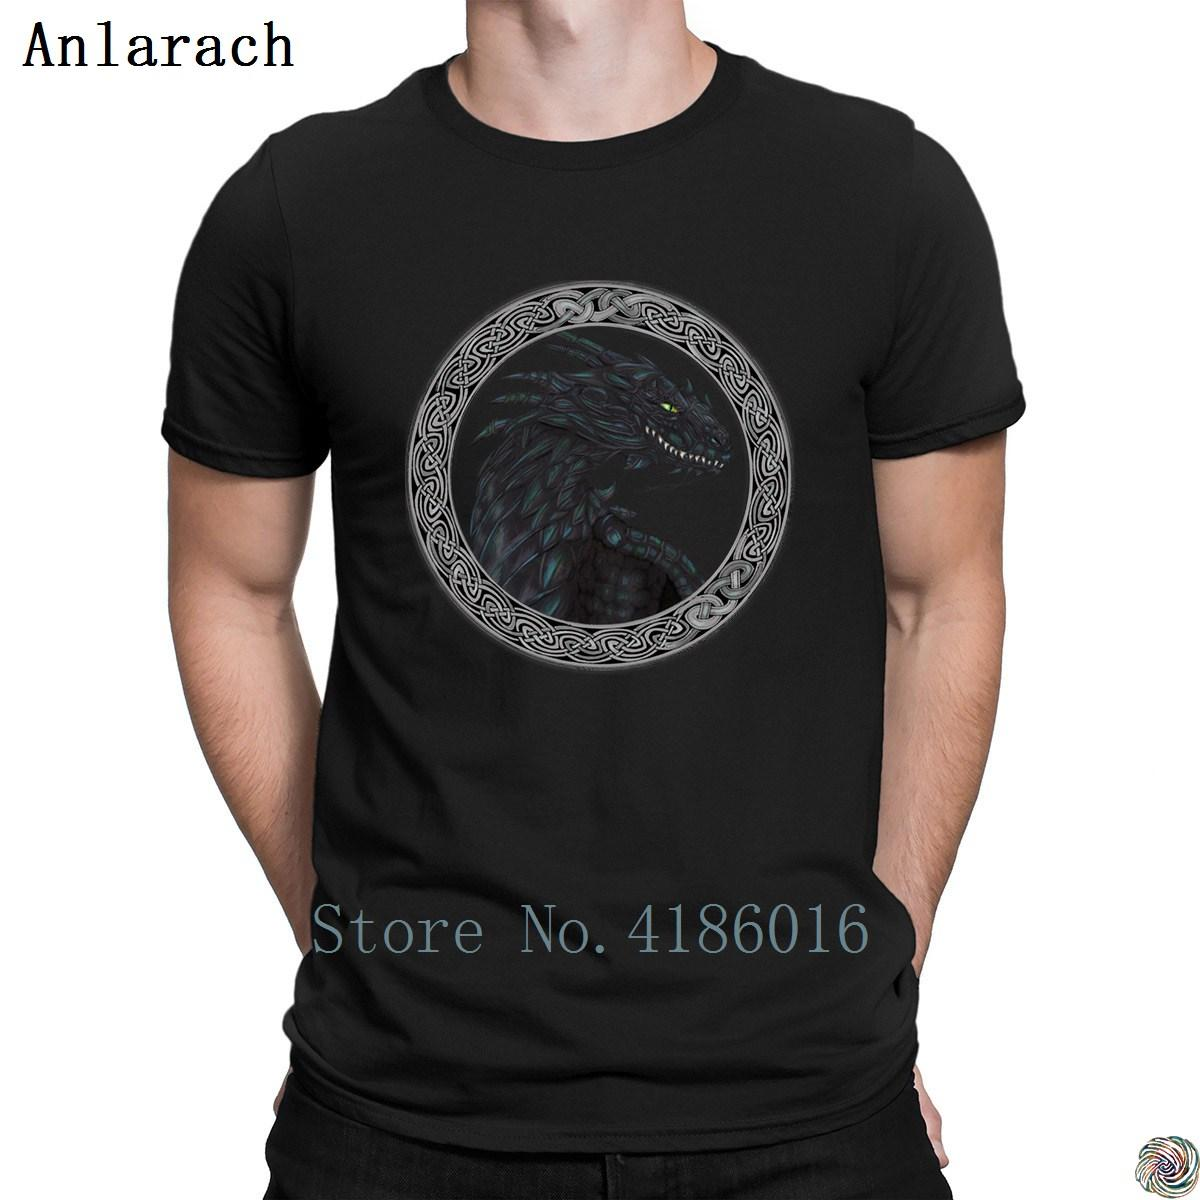 91bc586d The Circle Of The Black Dragon Tshirts Spring Autumn Clothes Hip Hop Design  Men'S Tshirt Famous Cotton Latest Unique Awesome T Shirts Online A T Shirts  From ...